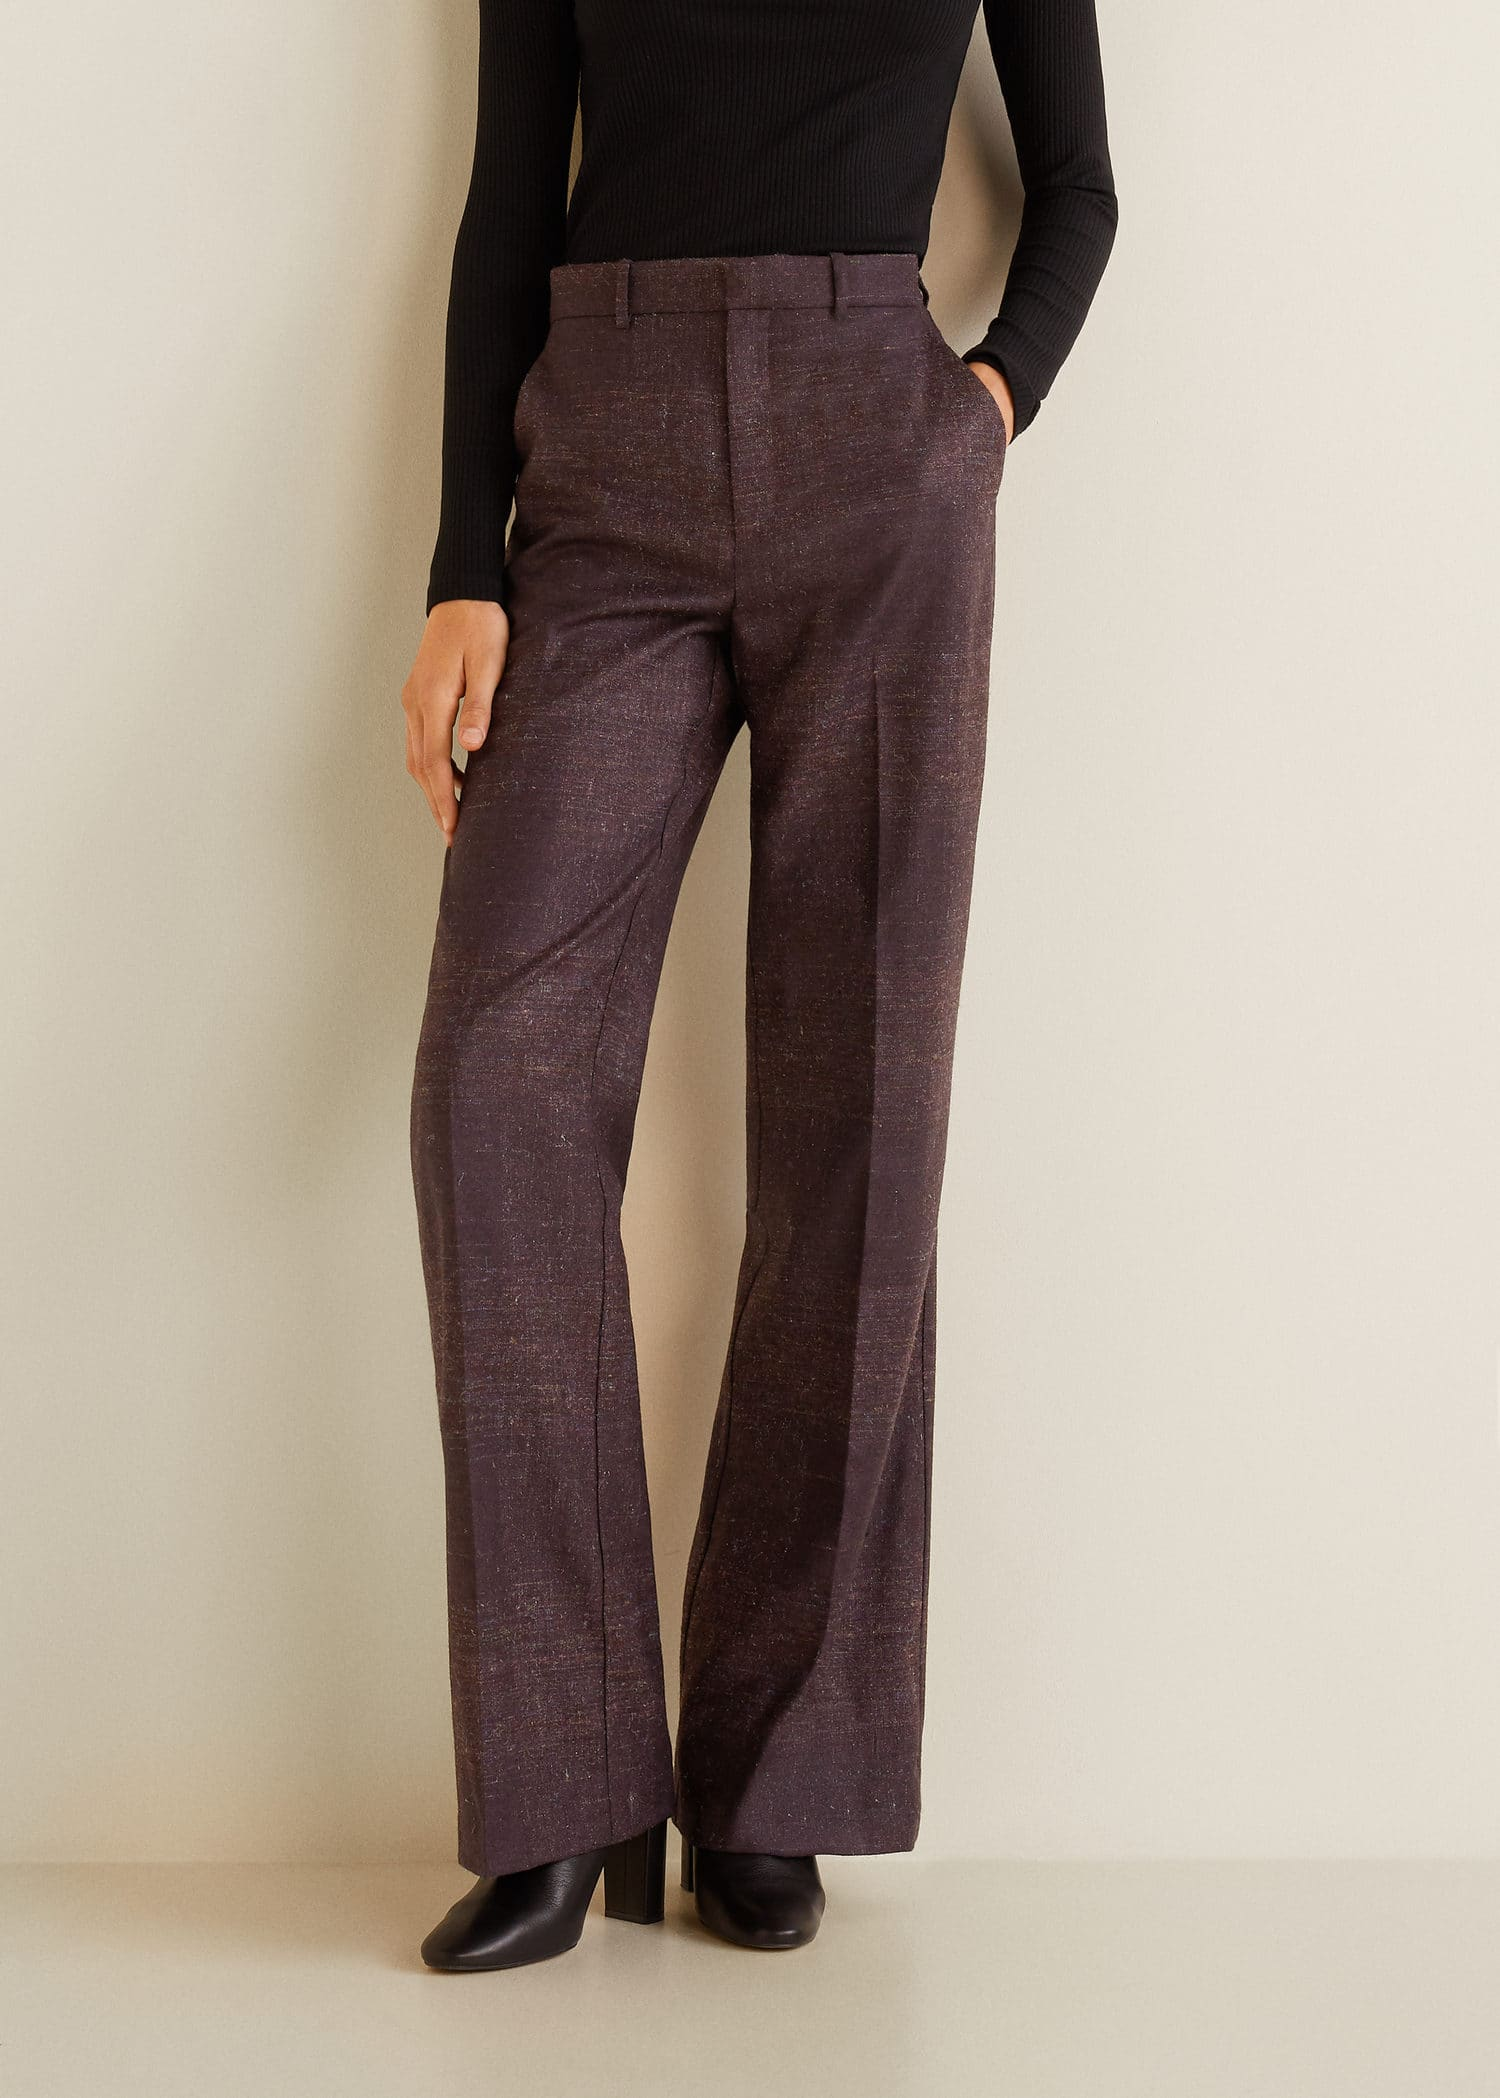 Flecked Trousers Wool Wool Flecked Flecked Wool Blend Blend Trousers 34AqR5jL